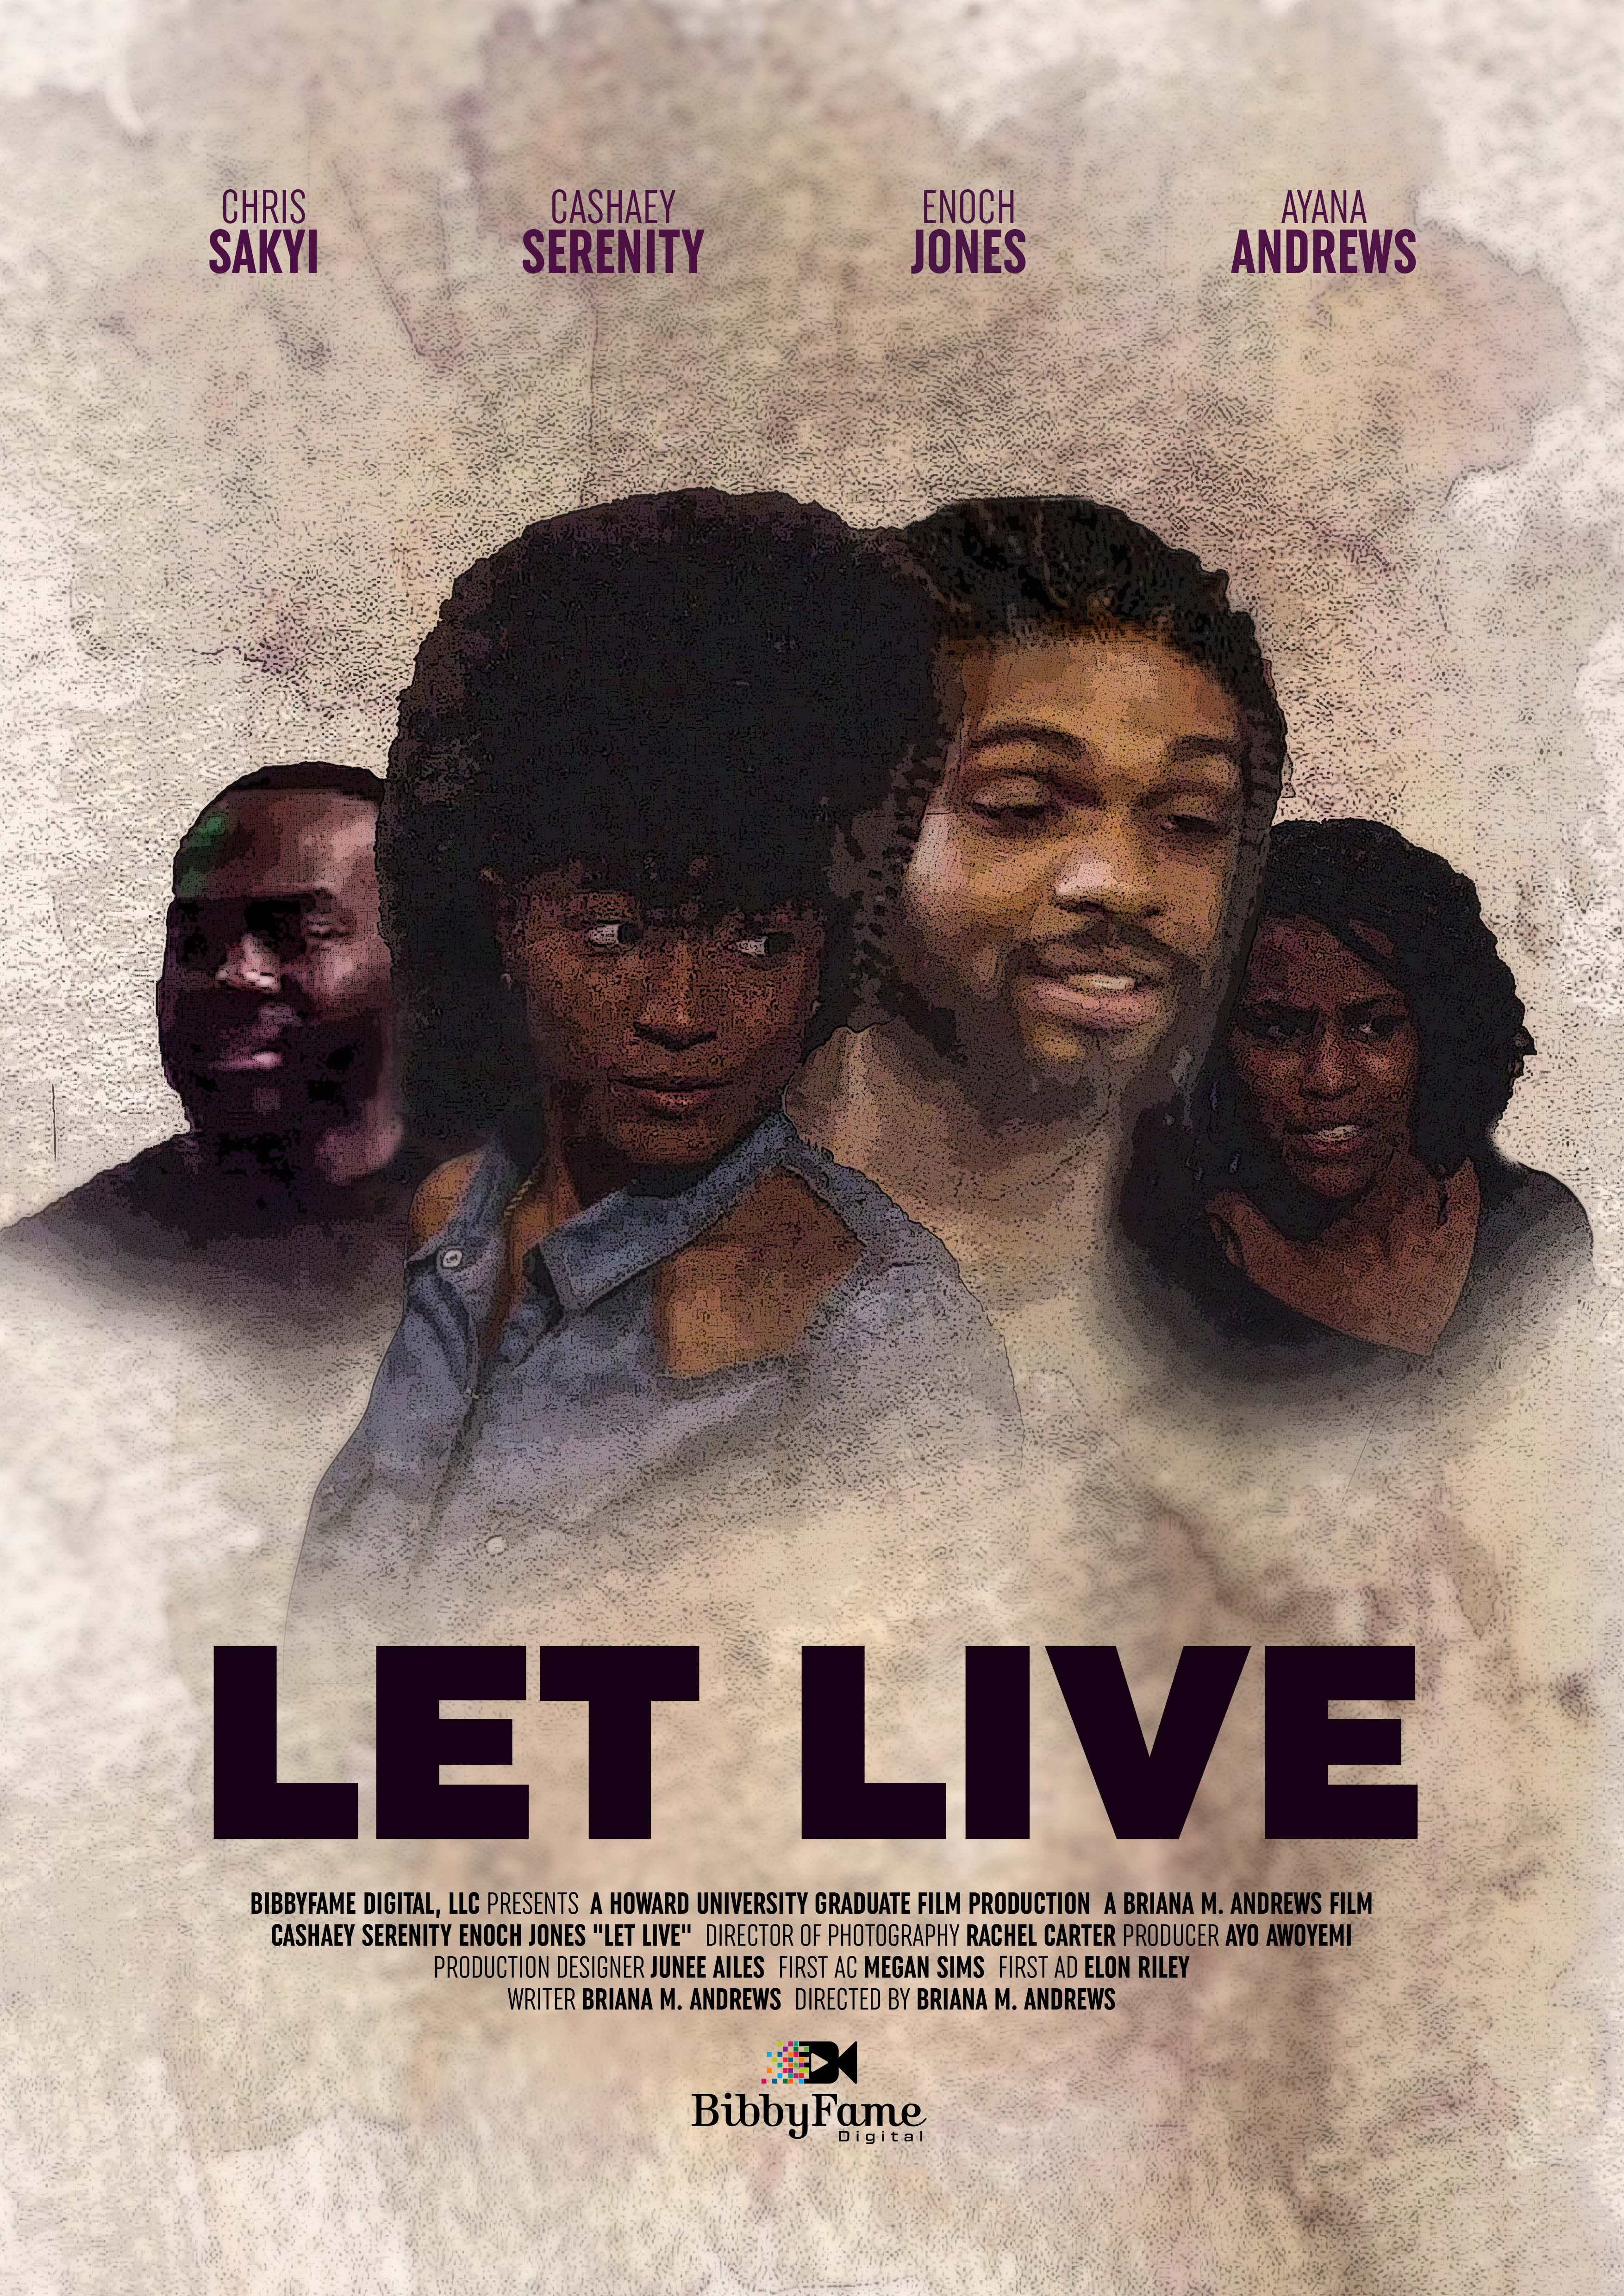 Let Live - Movie Poster reduced size